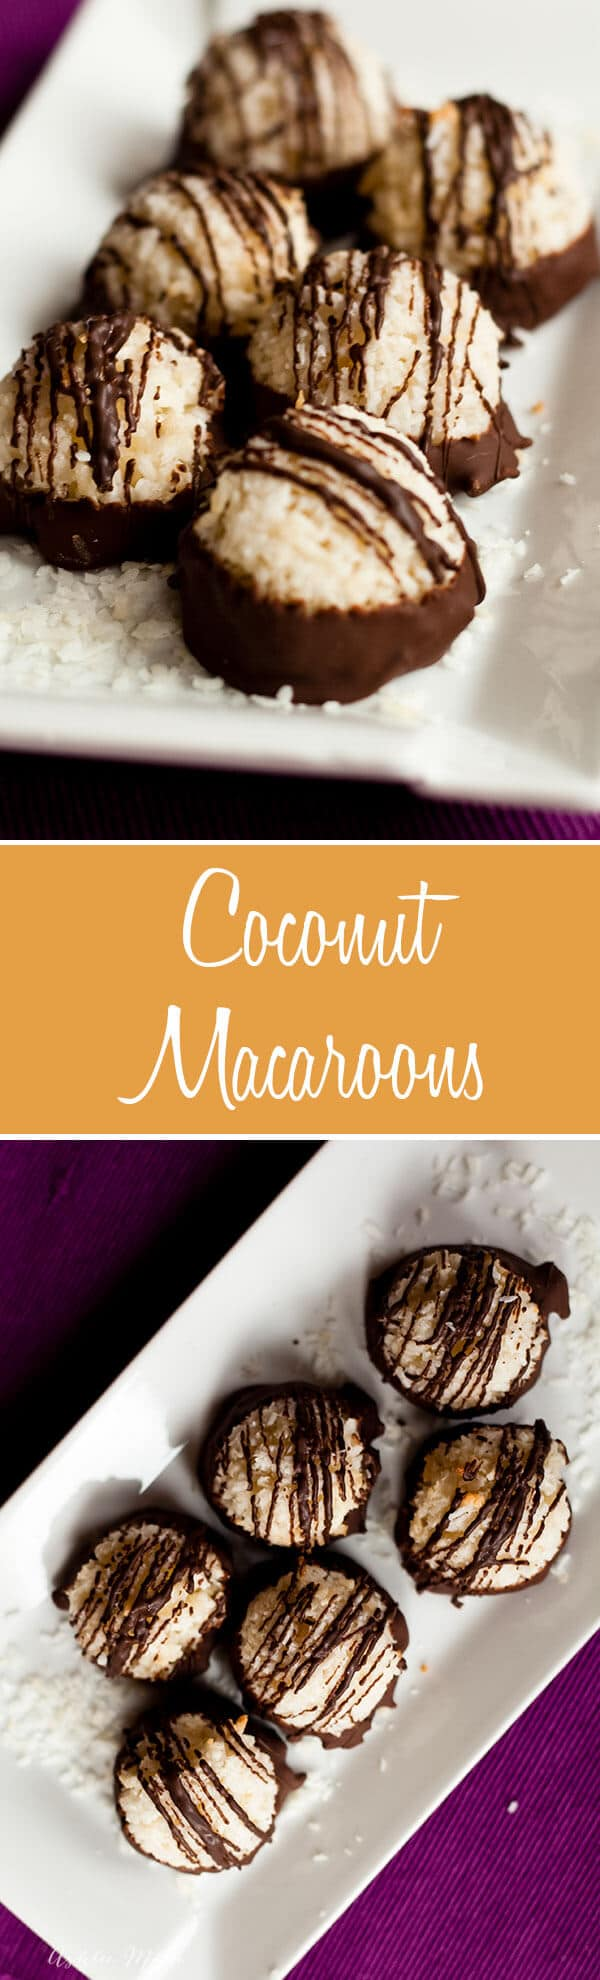 delicious and easy to make coconut macaroons